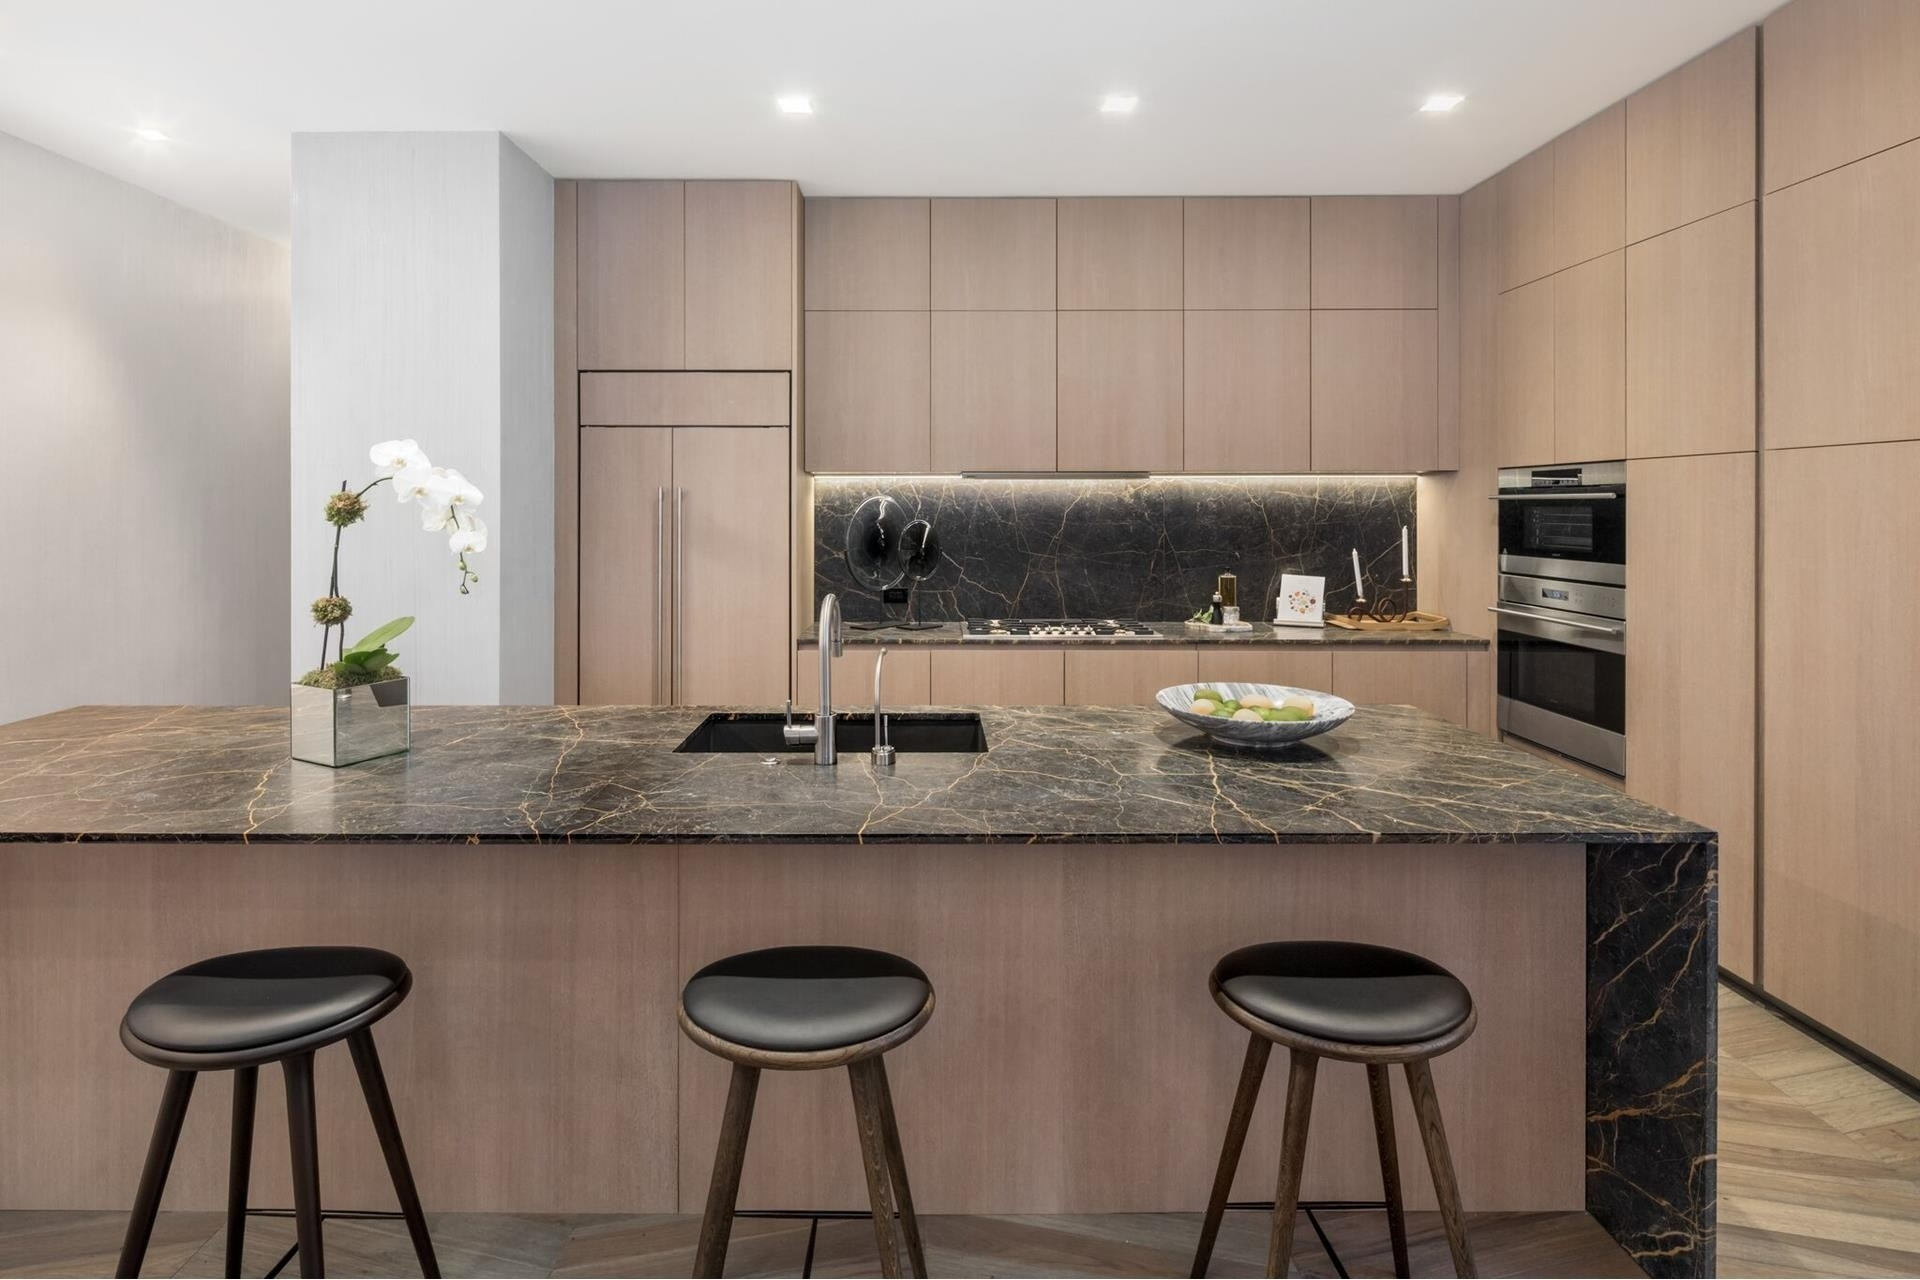 Property at 49 Chambers St, PHB TriBeCa, New York